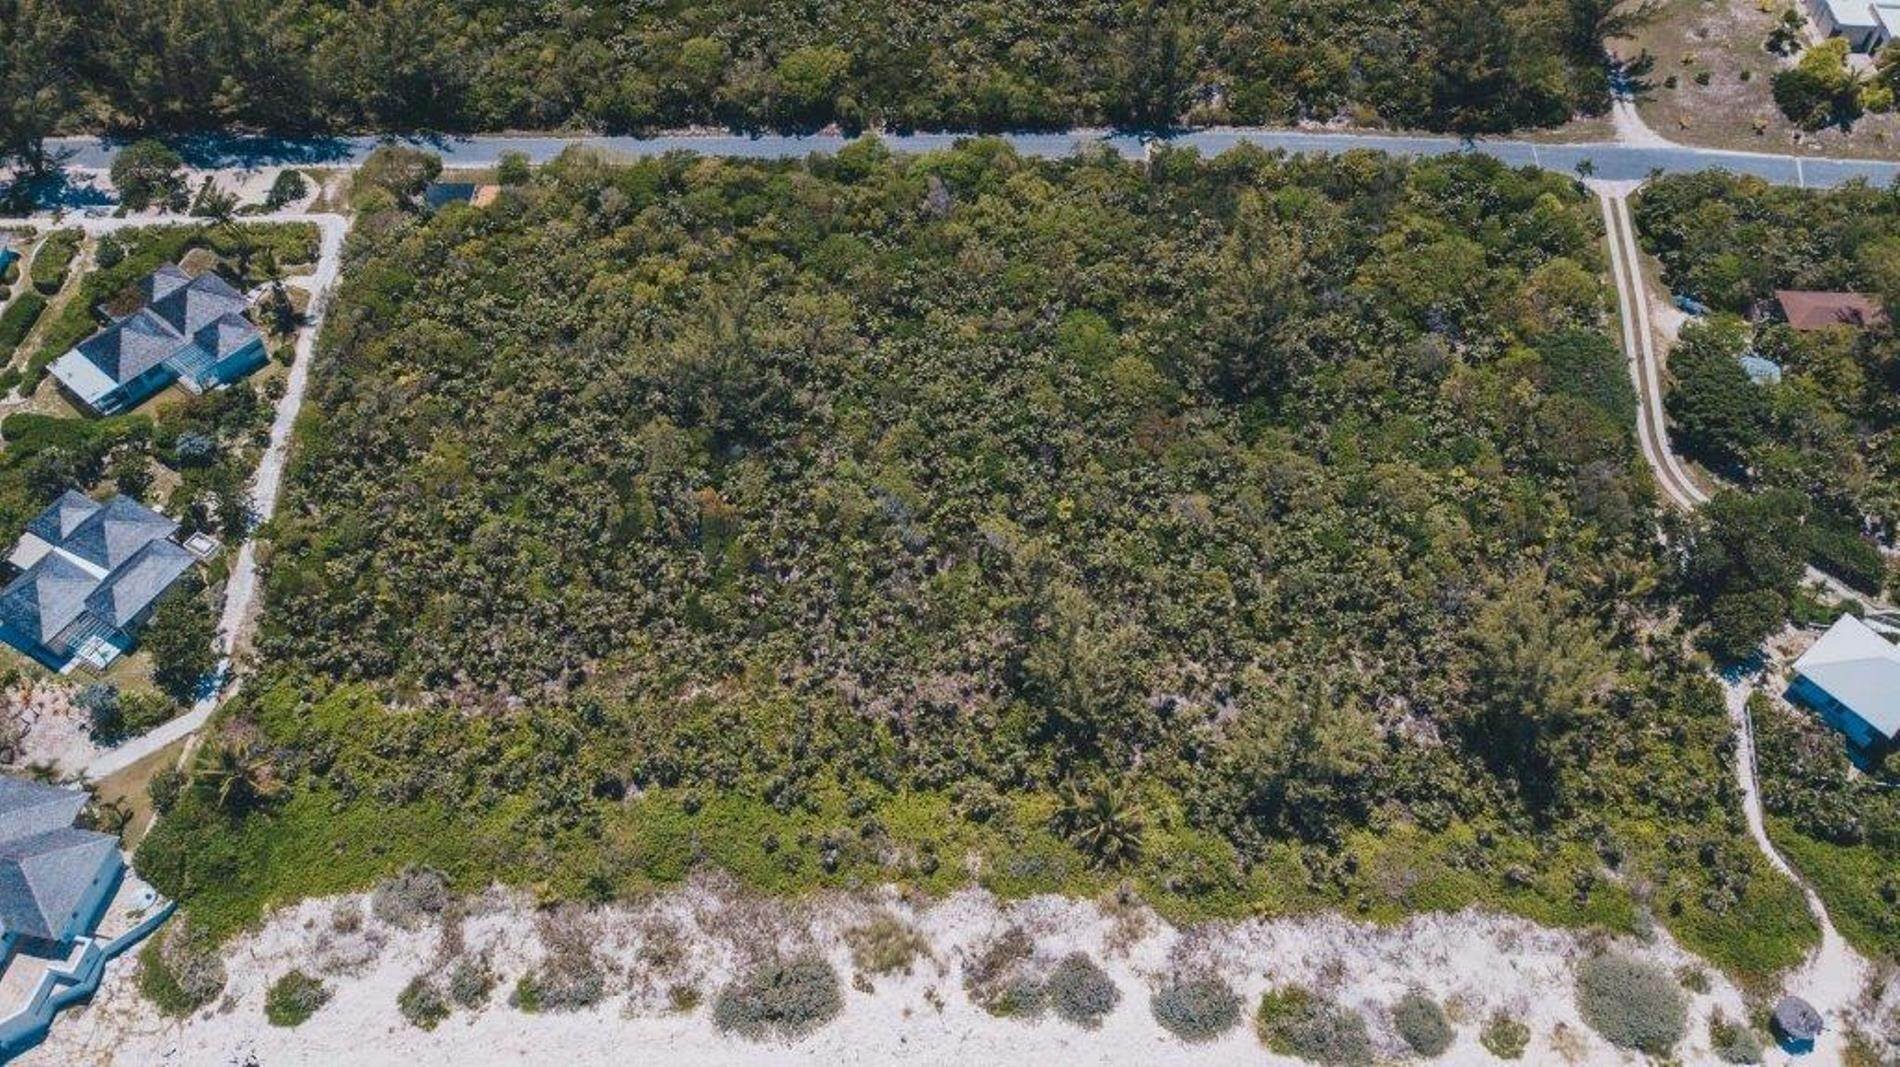 7. Terreno por un Venta en Unique Beach front Homesite at Windermere Beach Estates - Section A, Lot 9 and 126 - MLS 38497 Windermere Island, Eleuthera, Bahamas